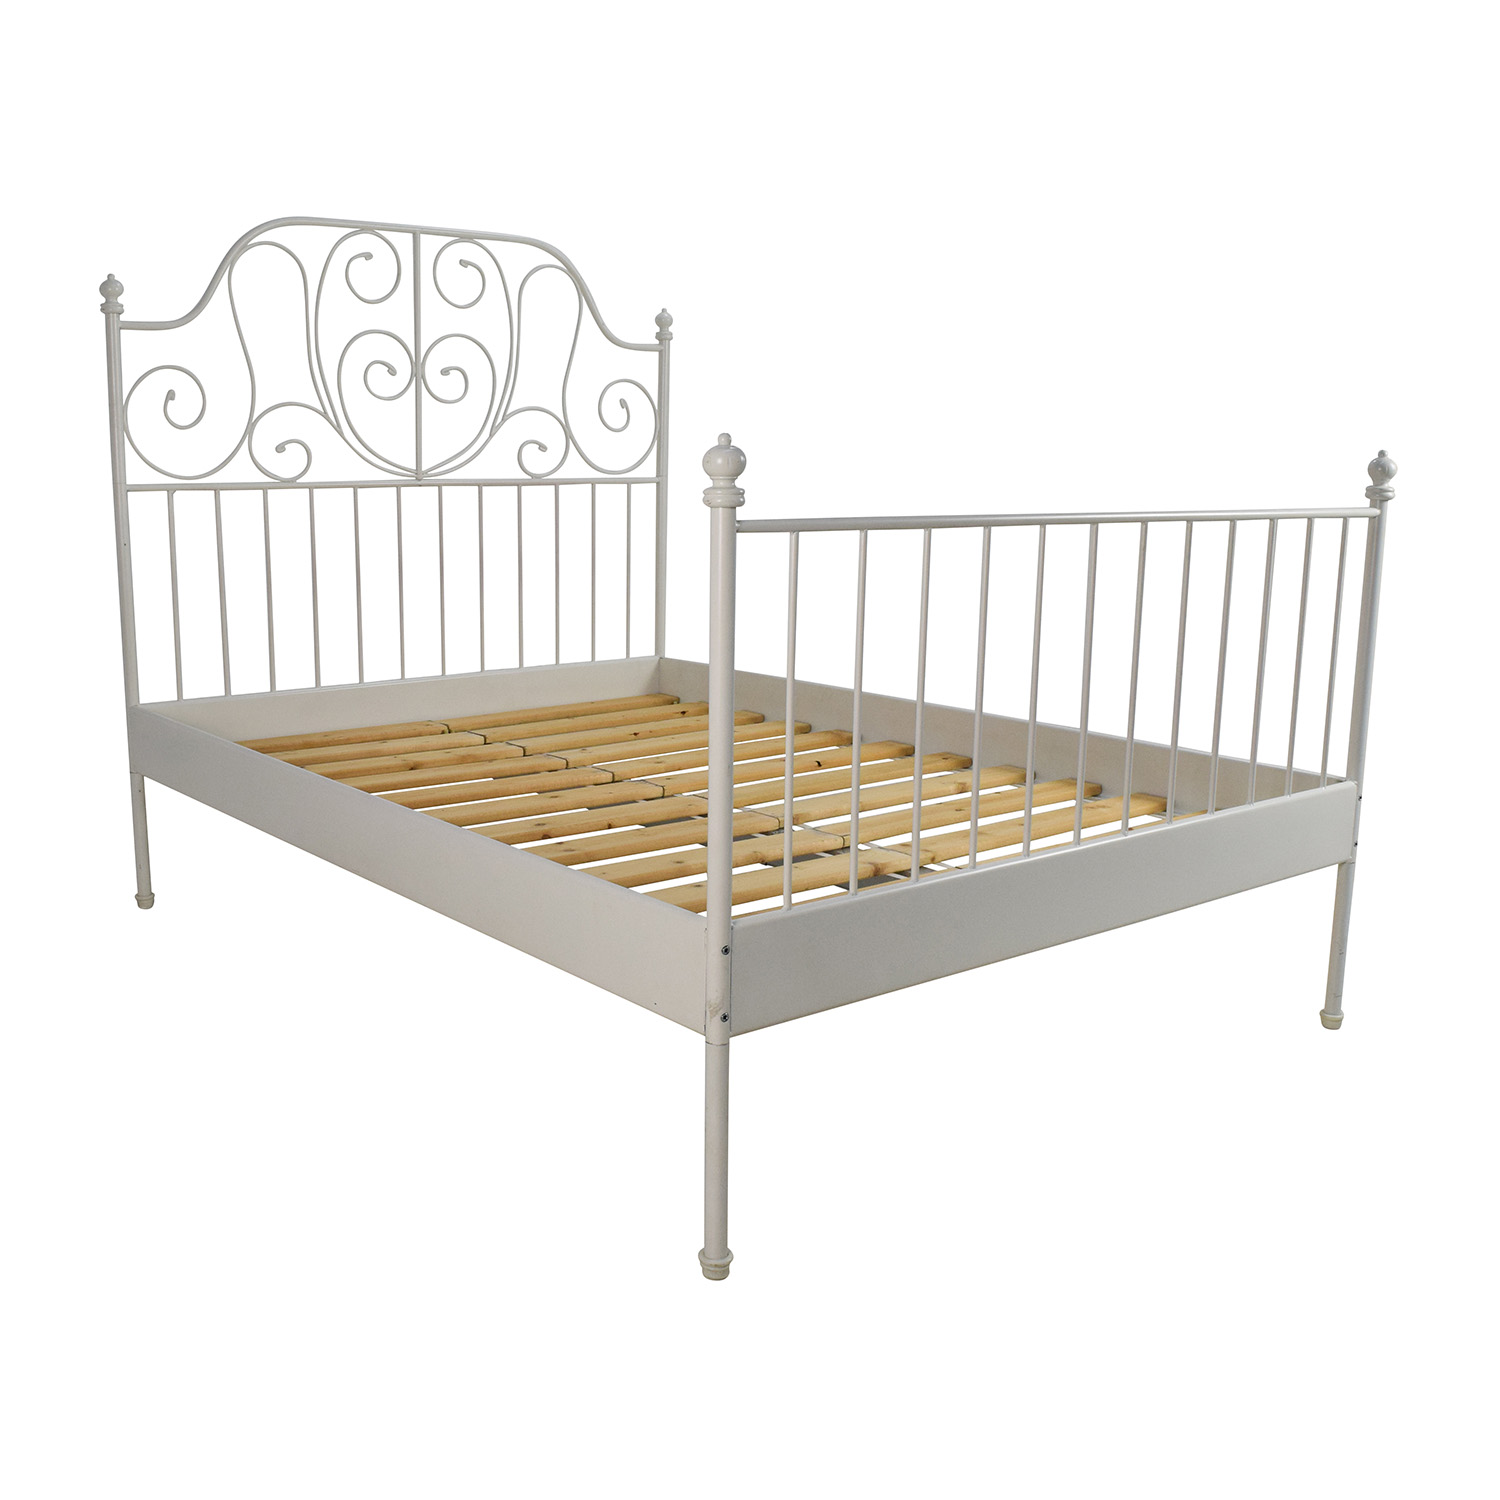 Ikea leirvik bed frame review ikea bedroom product reviews for Ikea mattress frame